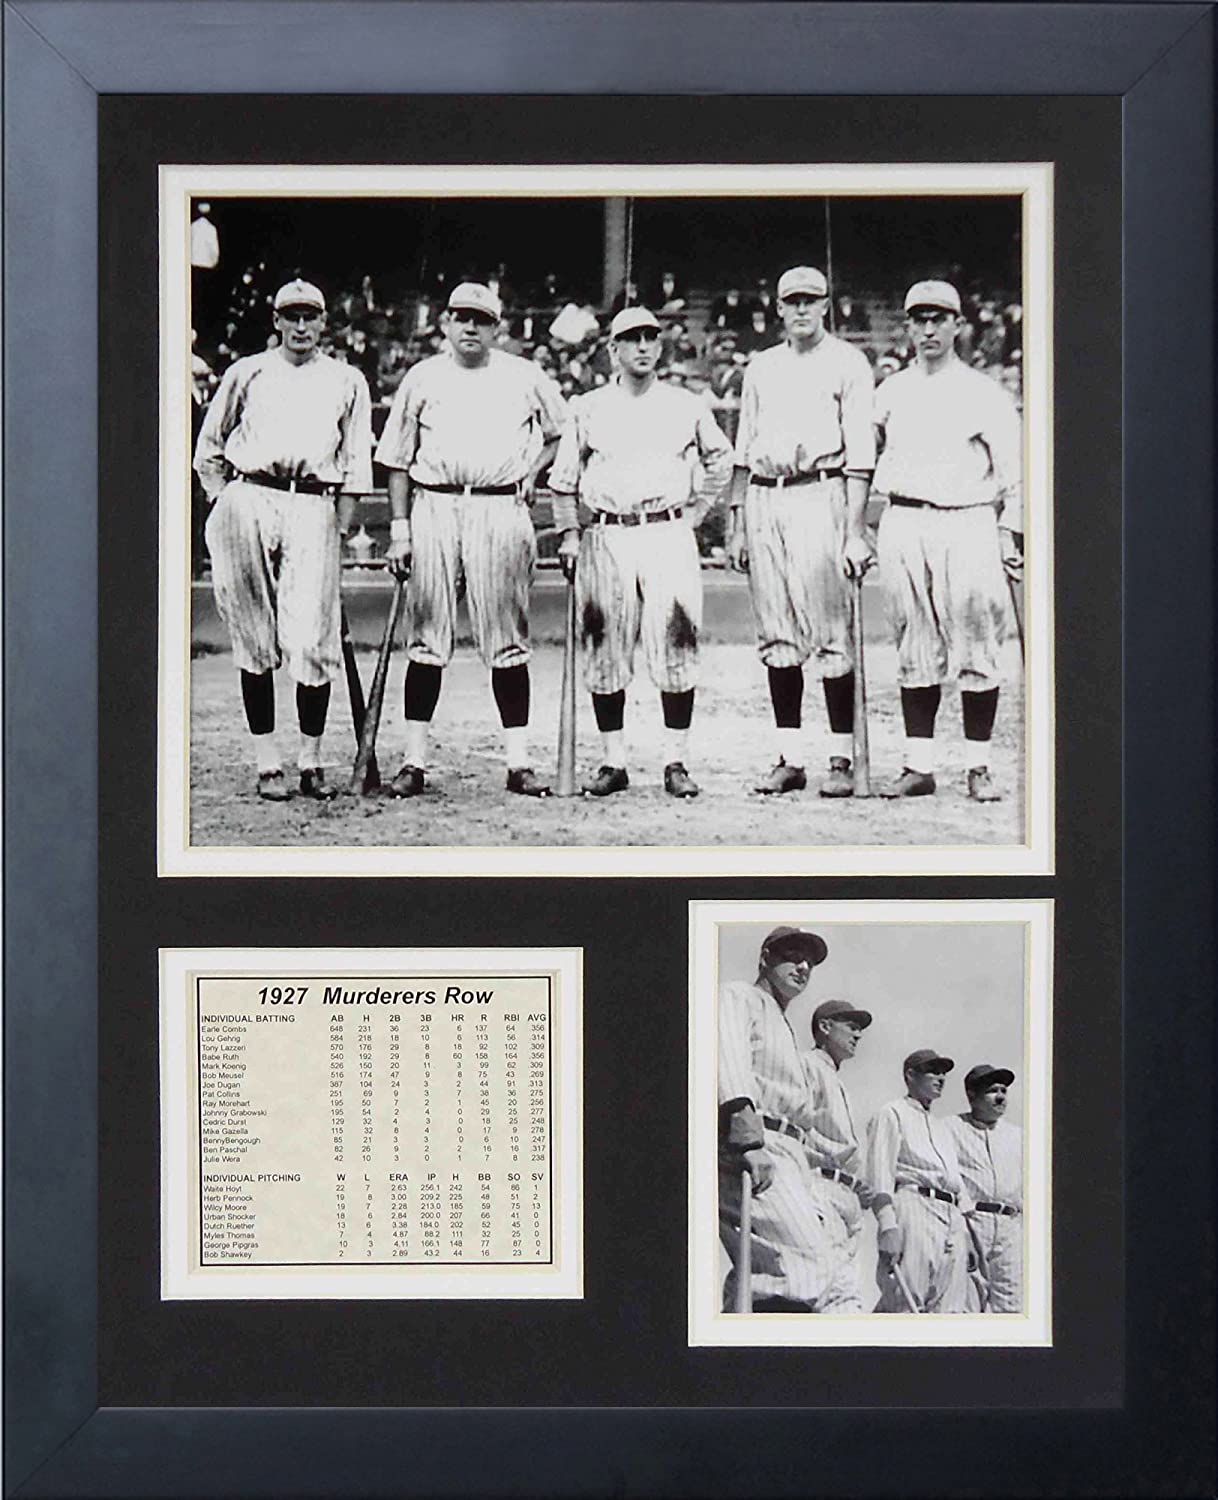 11x14-Inch Legends Never Die 1927 New York Yankees Murderers Row Framed Photo Collage